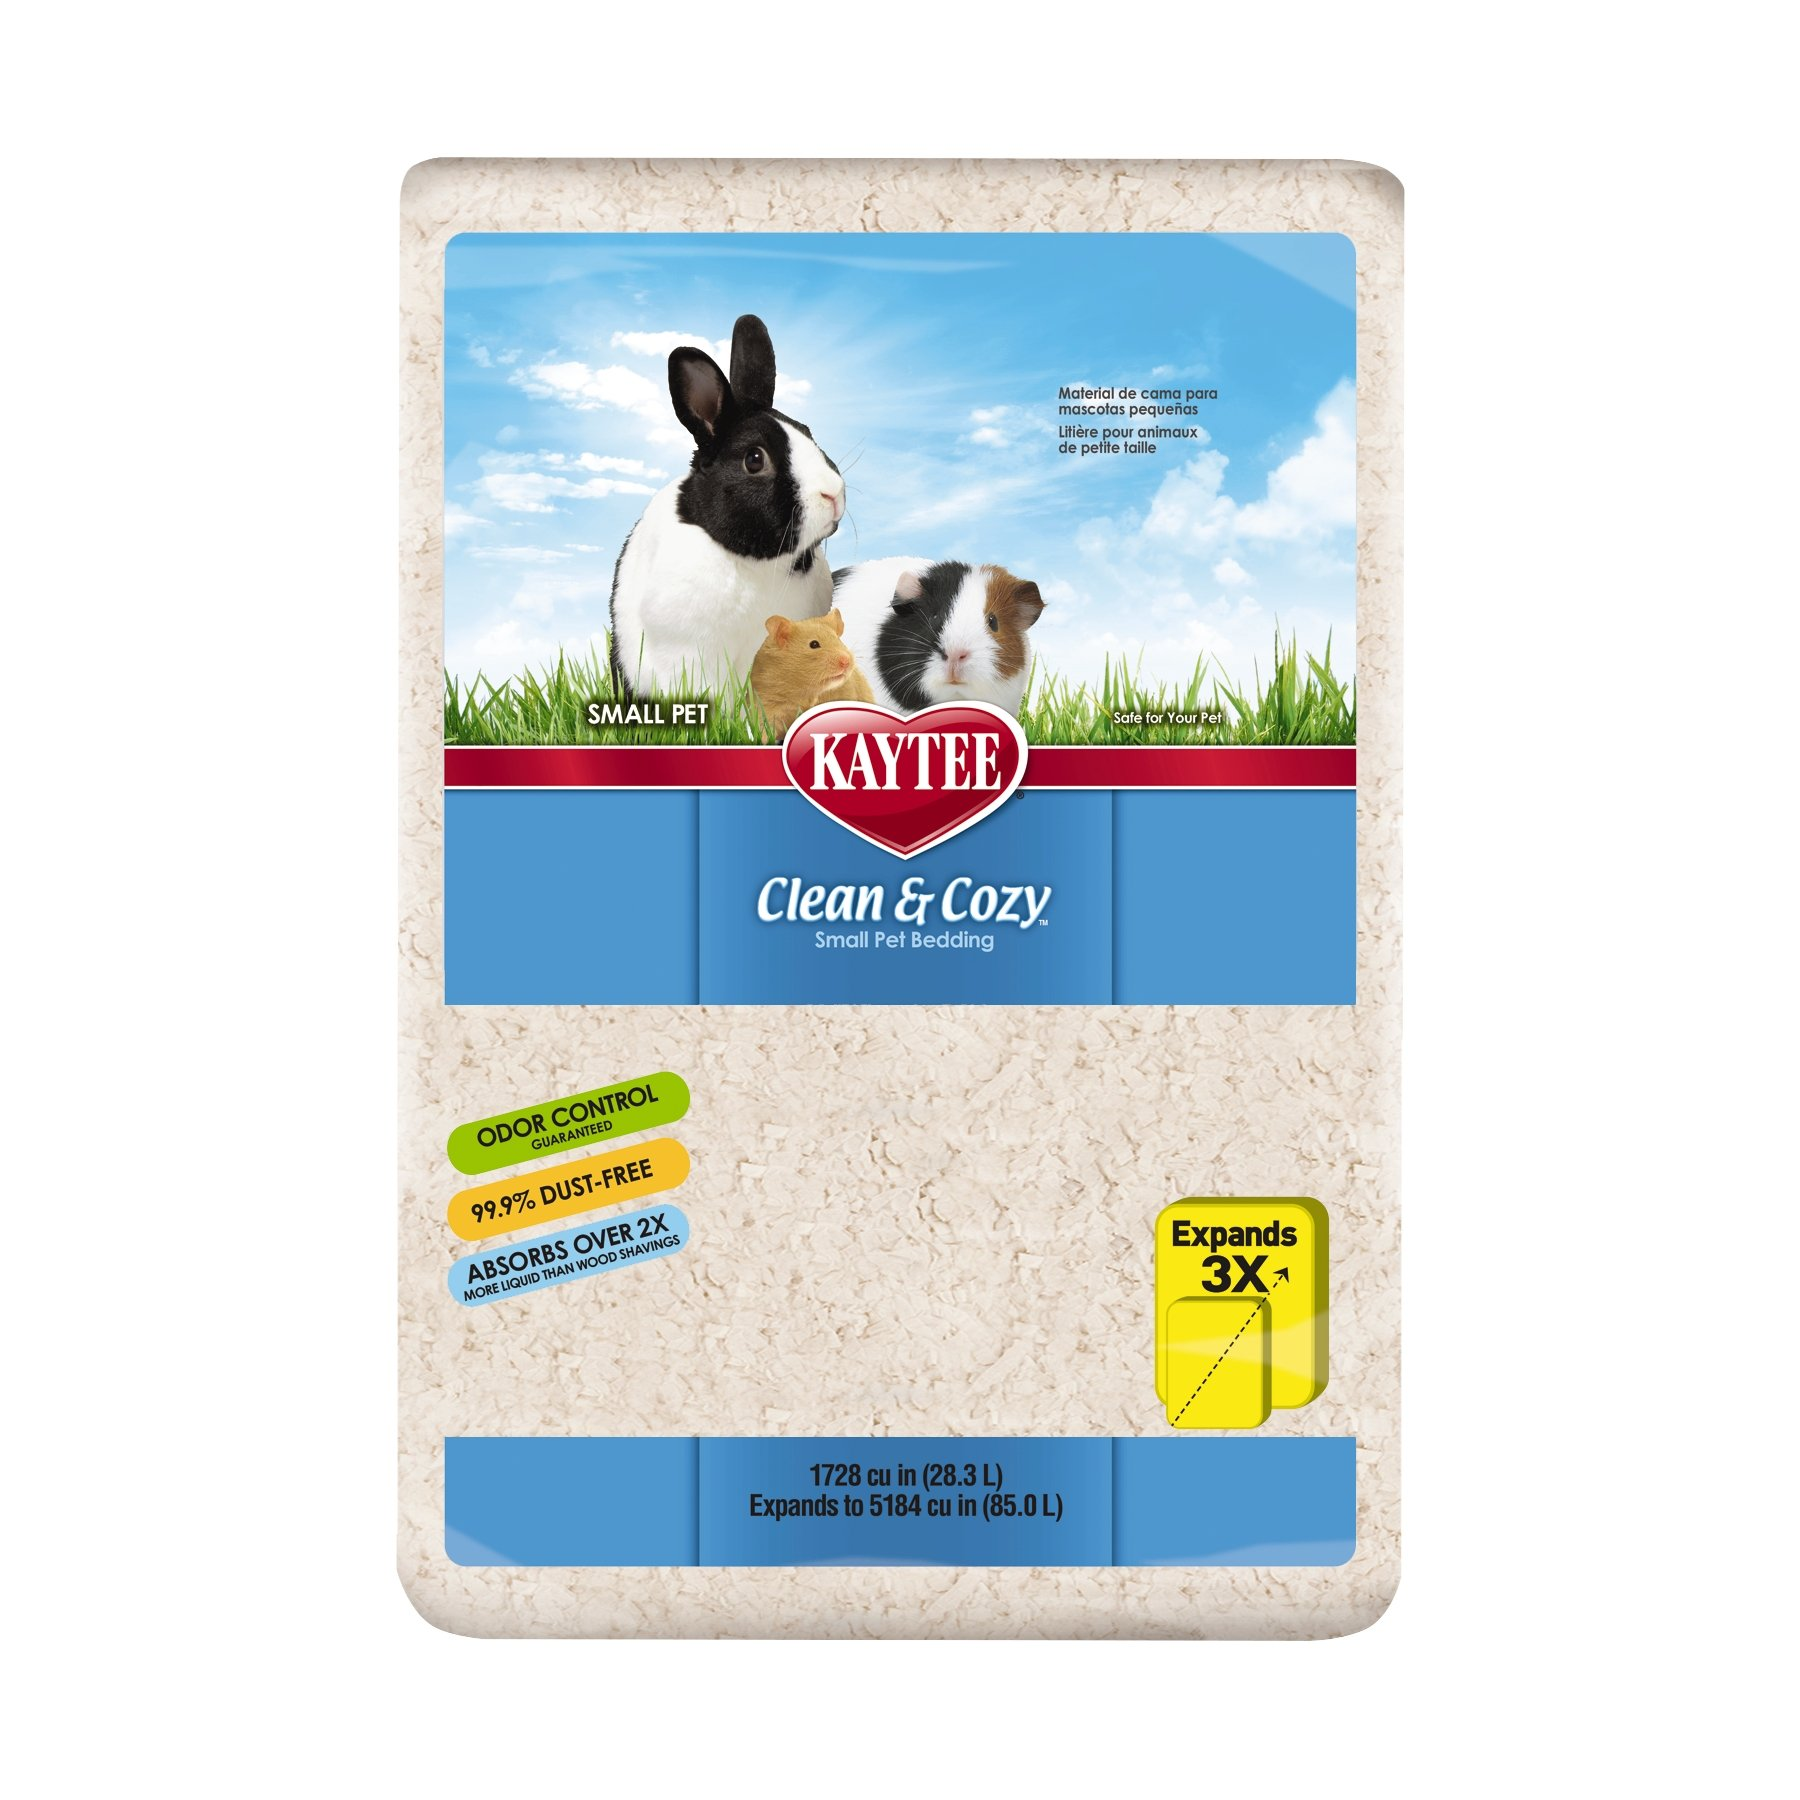 Kaytee Clean & Cozy White Small Animal Bedding, 85L (size may vary) by Kaytee